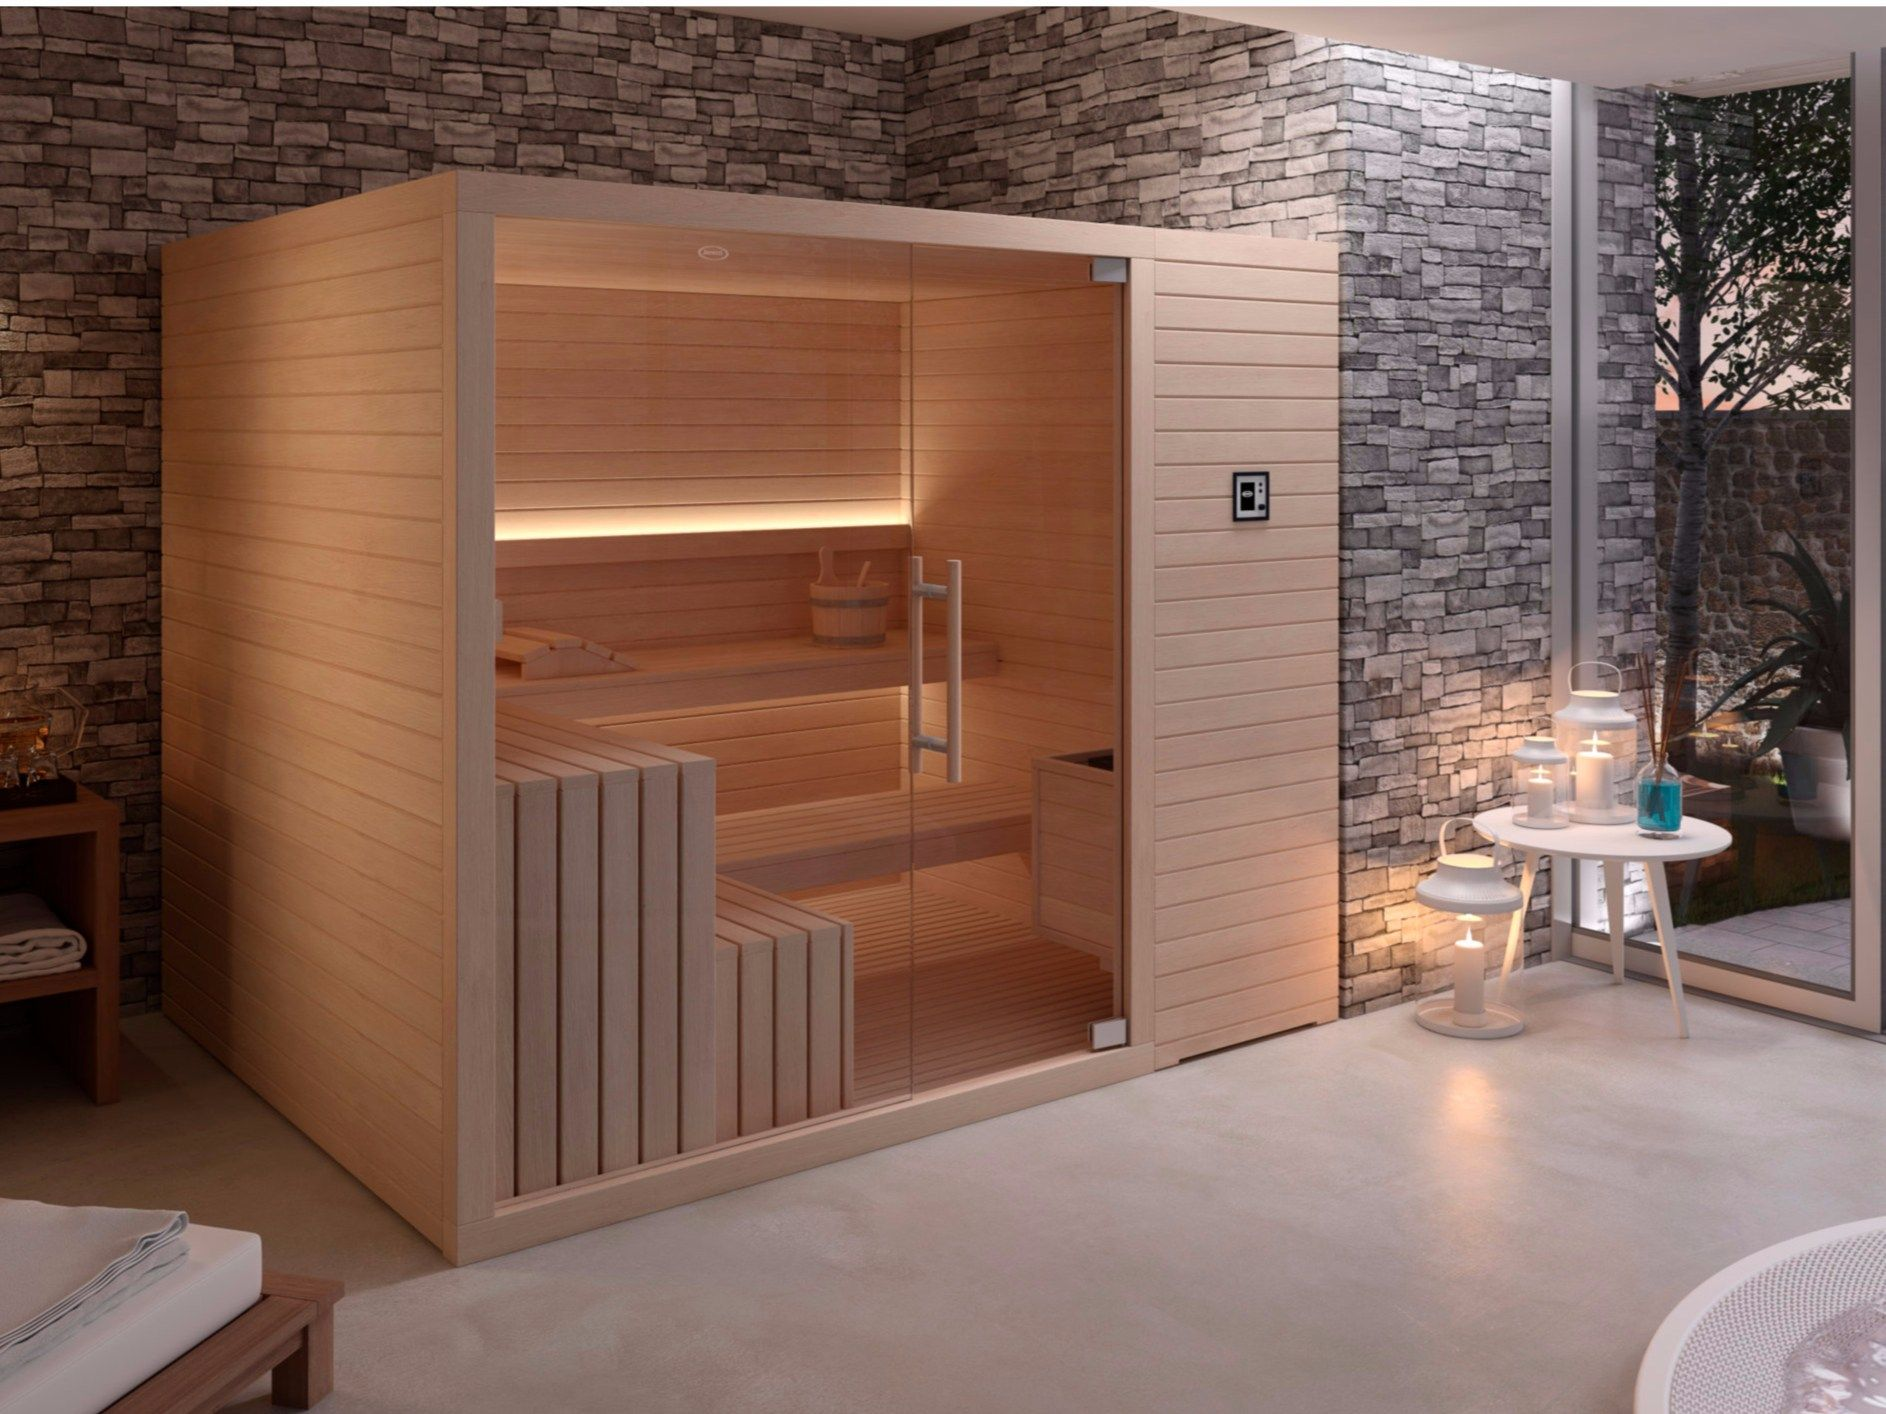 Salle De Bain Spa Sauna ~ sauna mood jacuzzi europe sauna steam room jacuzzi